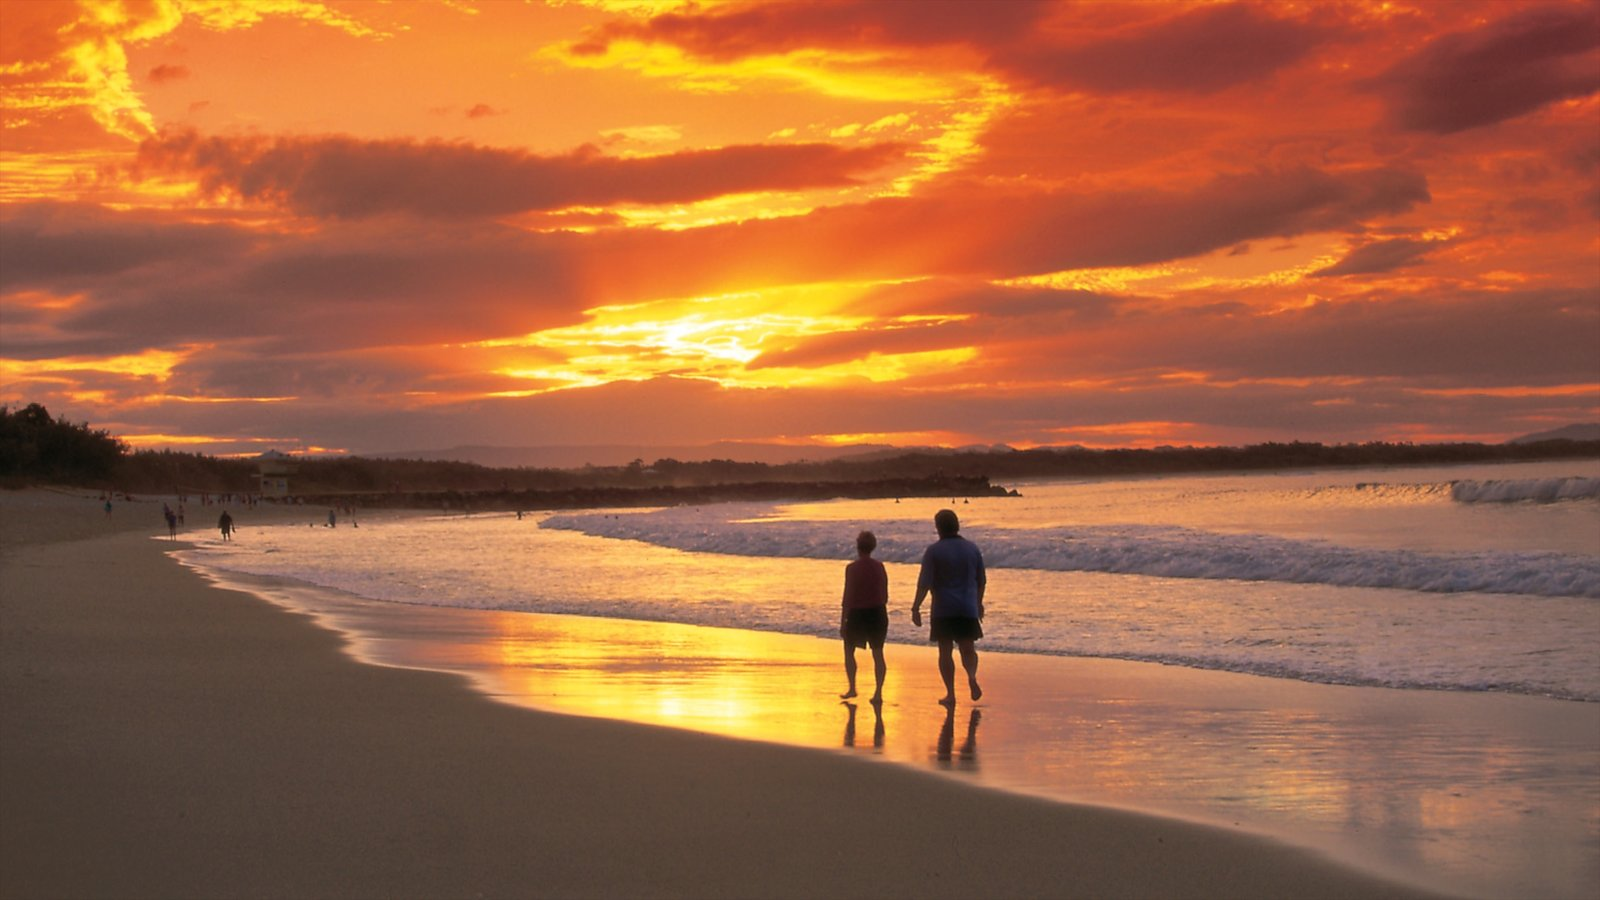 Noosa Heads featuring a sandy beach and a sunset as well as a couple